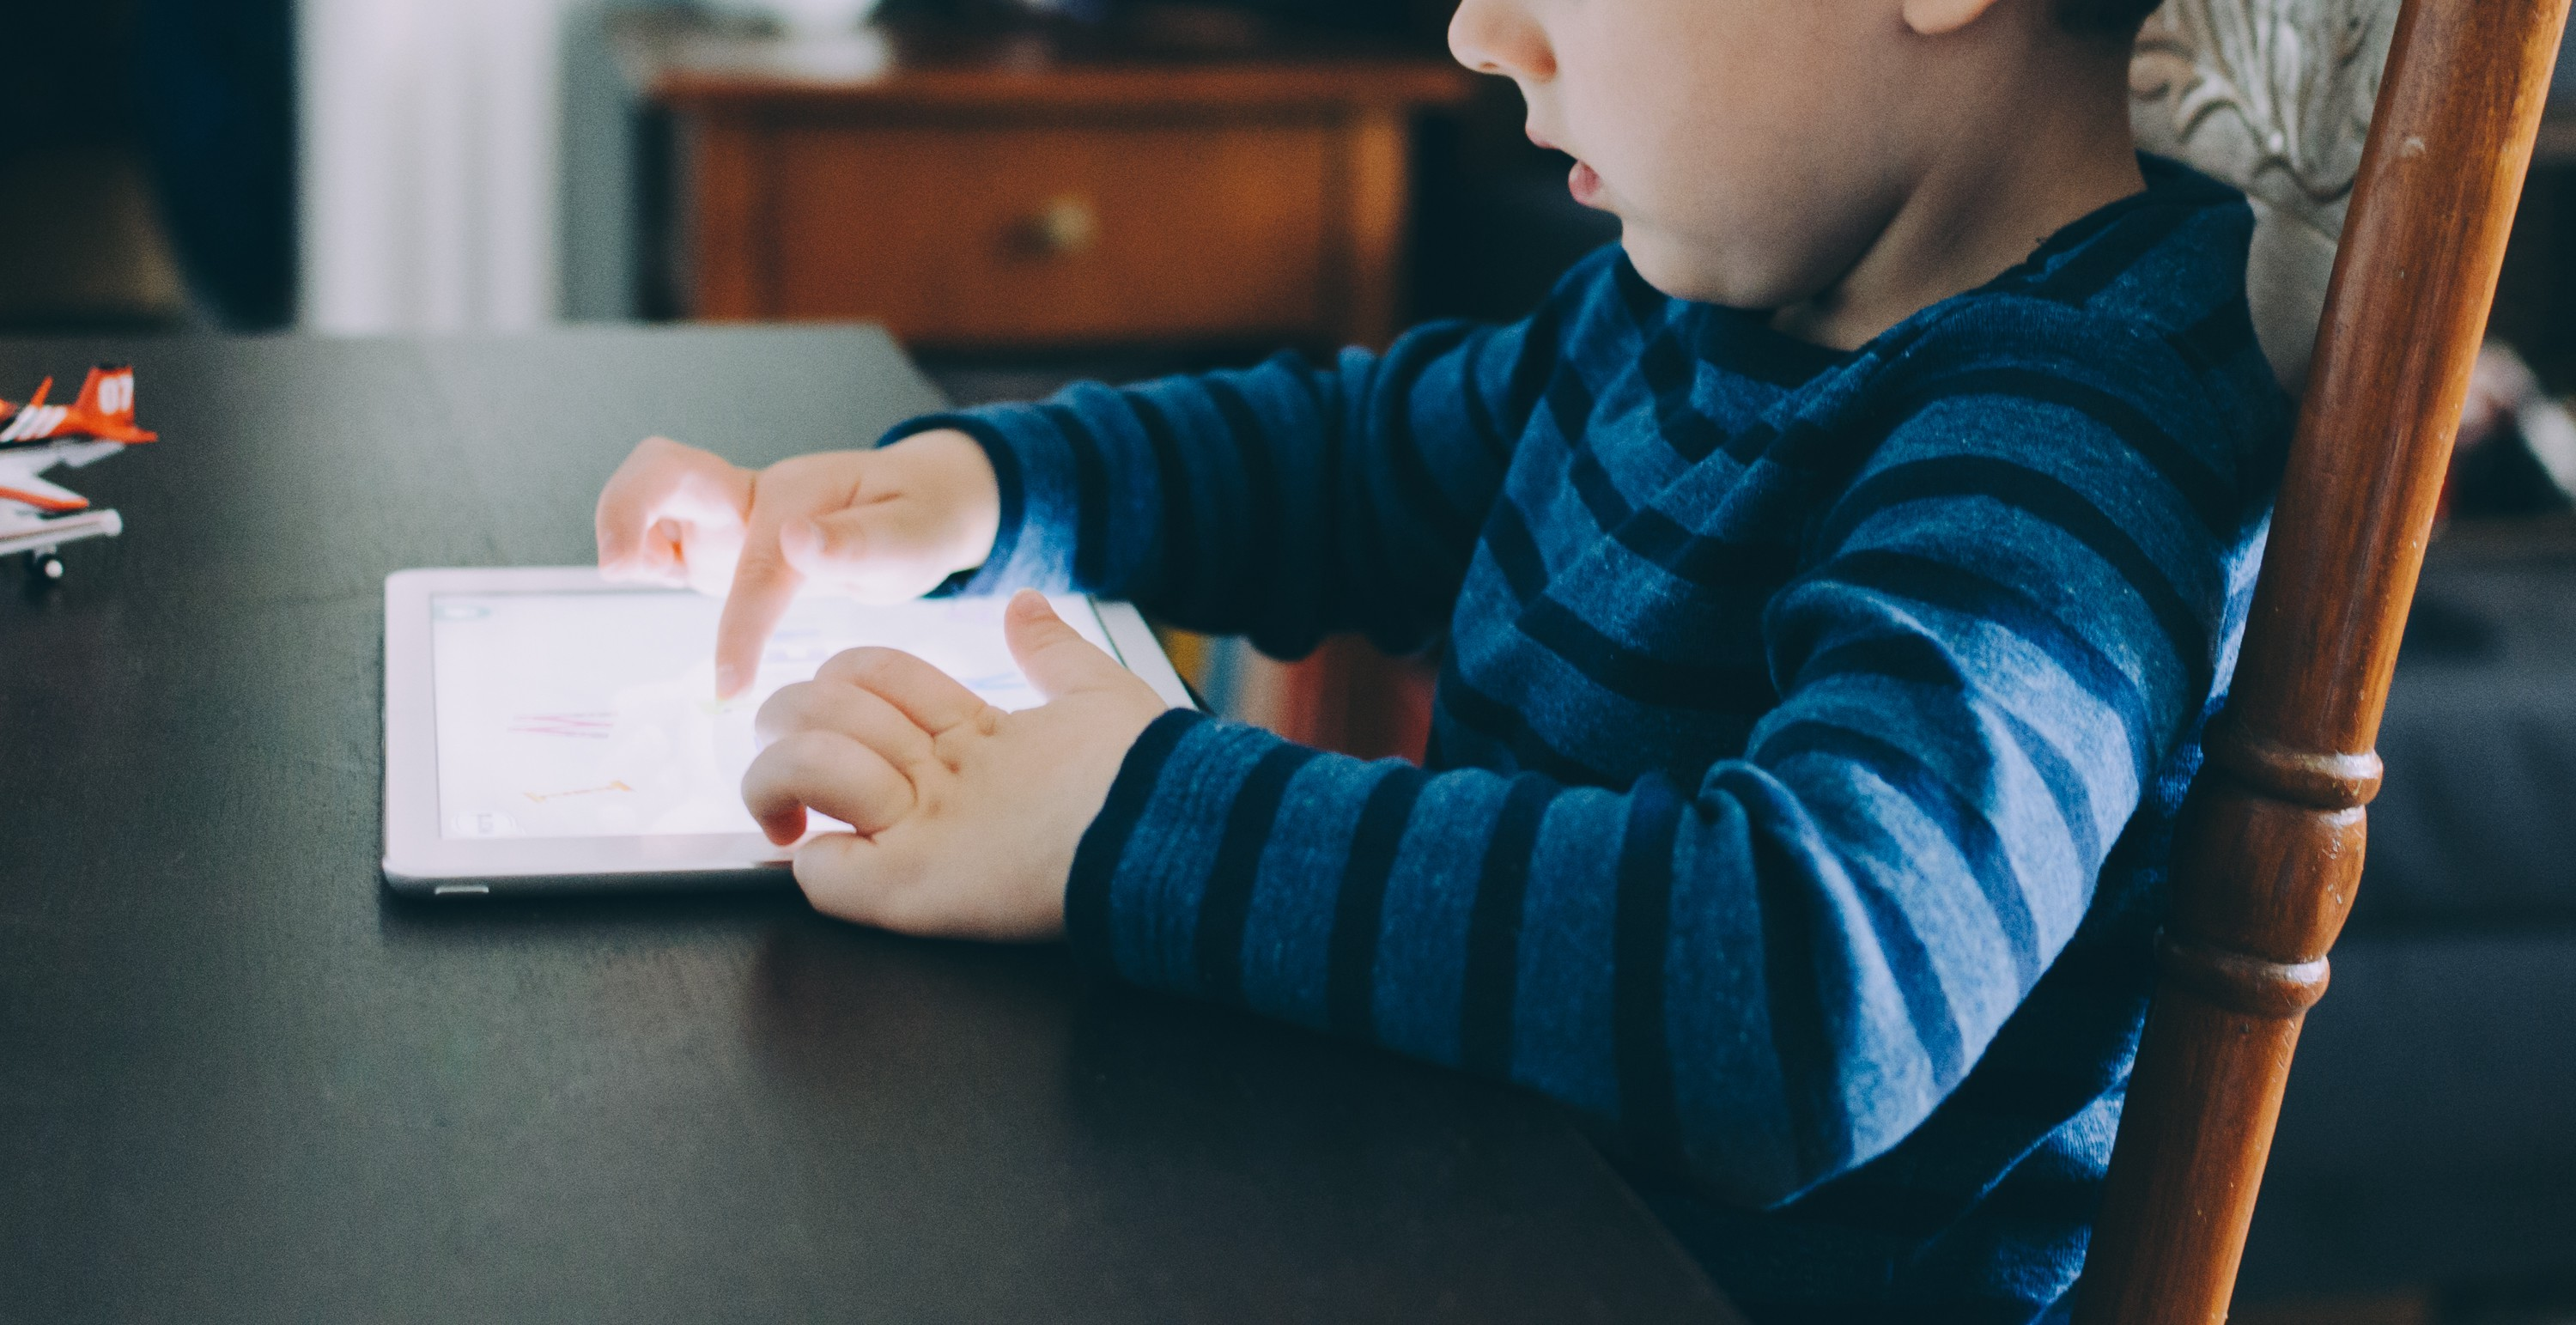 A child using a tablet